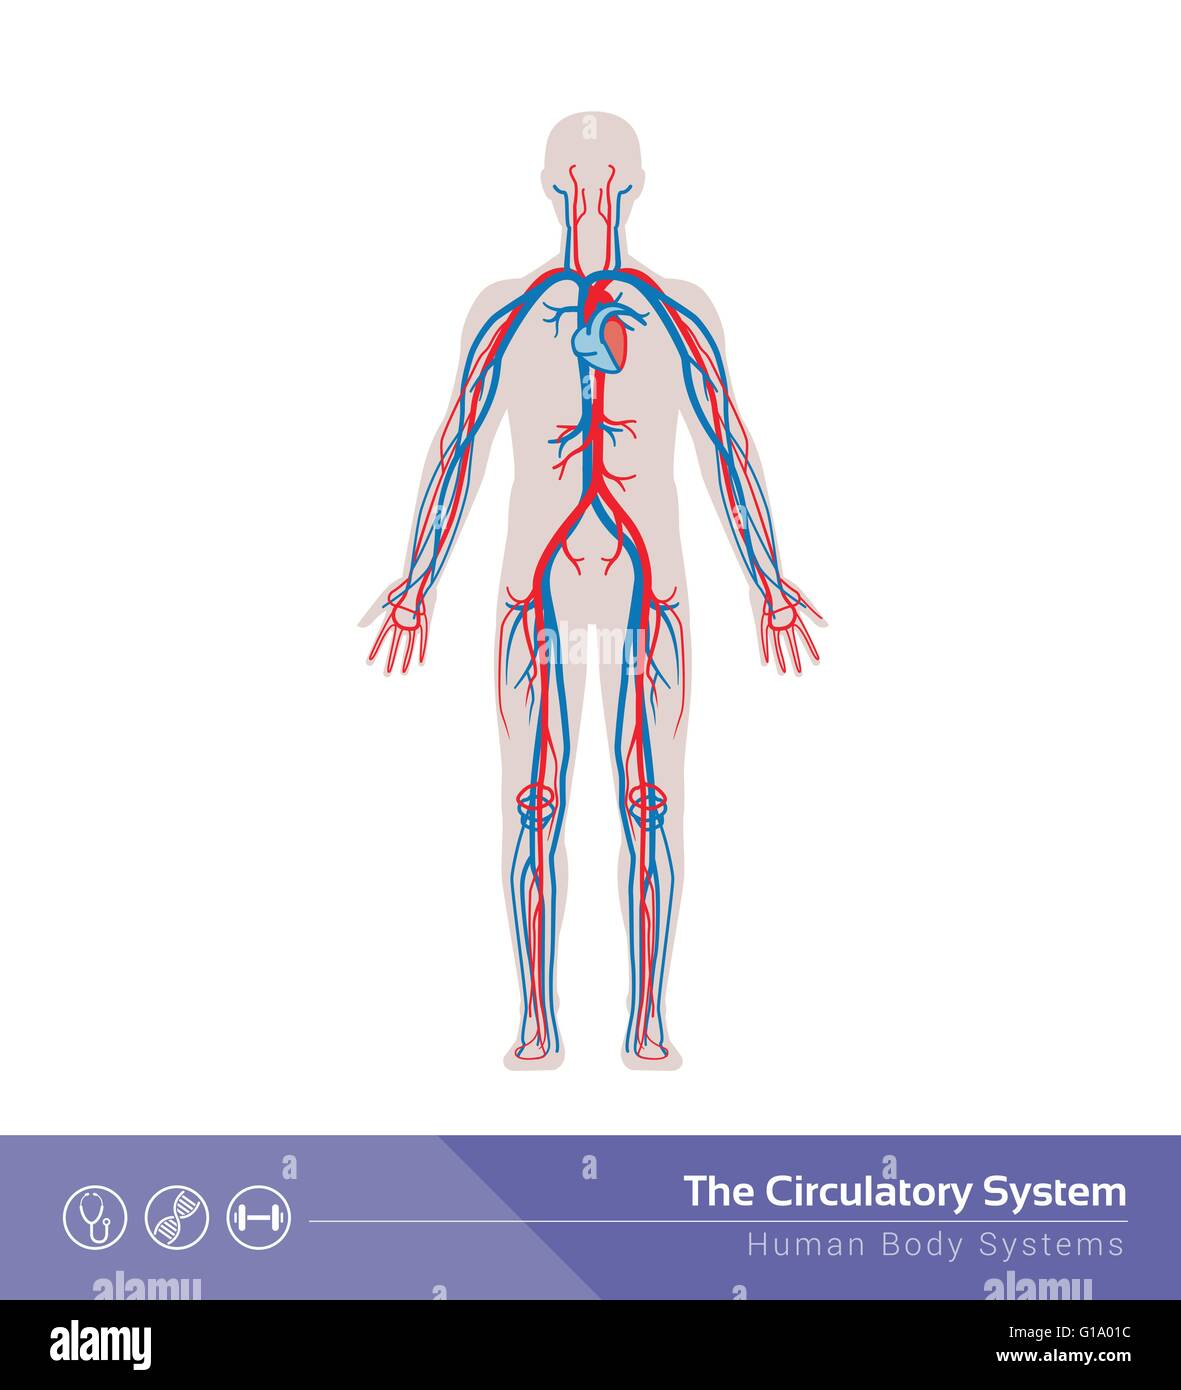 The circulatory or cardiovascular human body system medical illustration - Stock Image